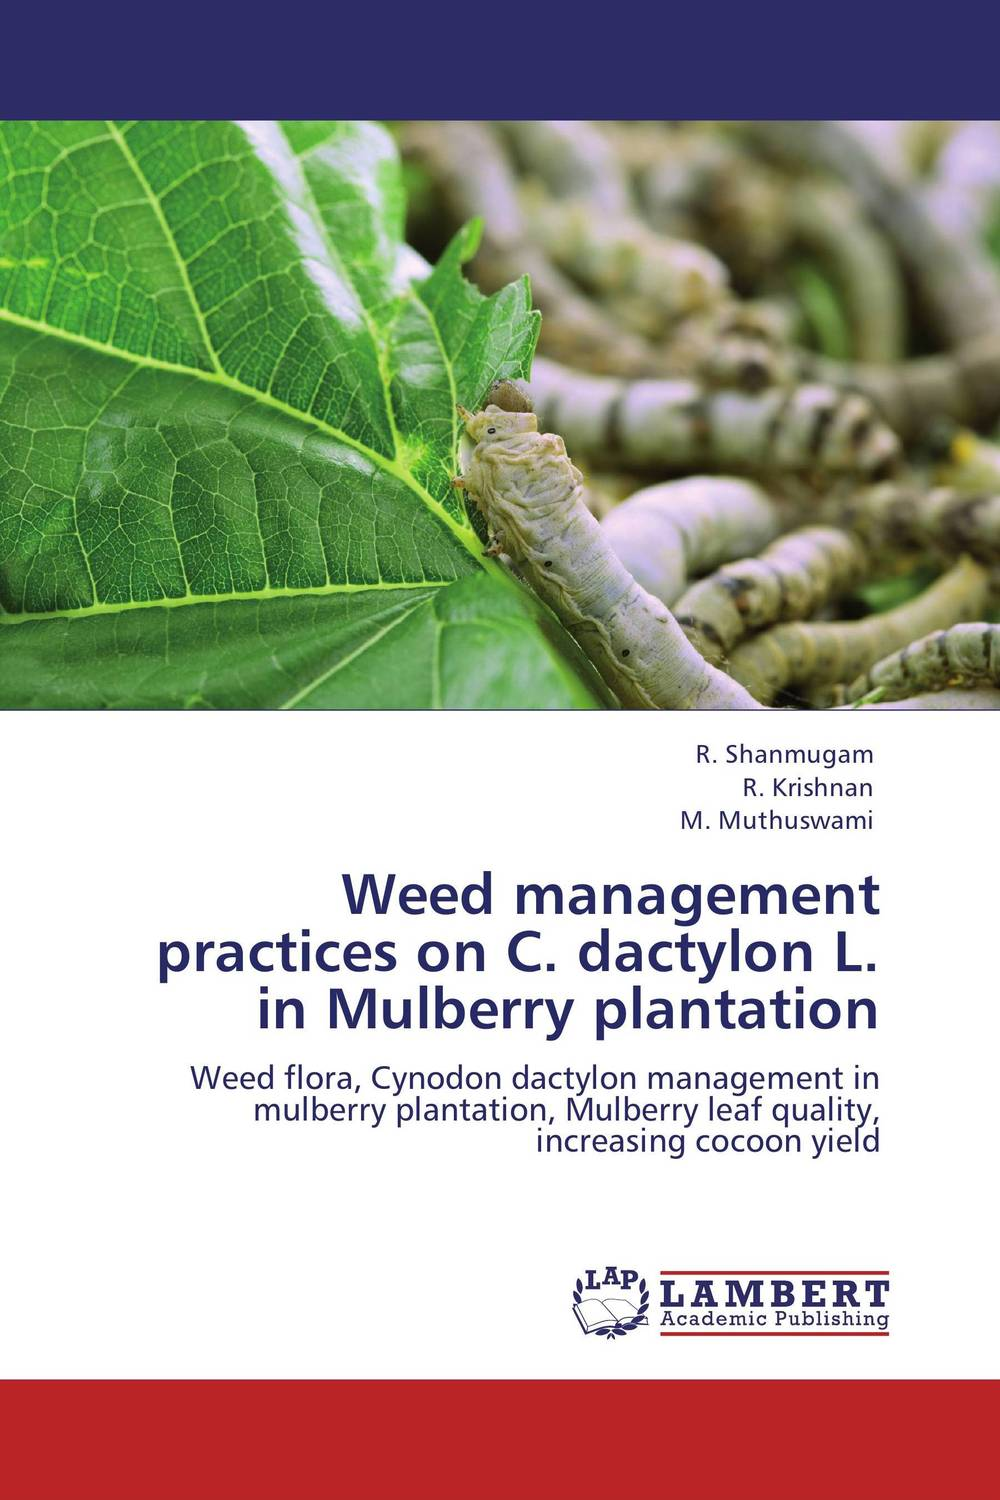 Weed management practices on C. dactylon L. in Mulberry plantation the meadow vale ponies mulberry and the summer show